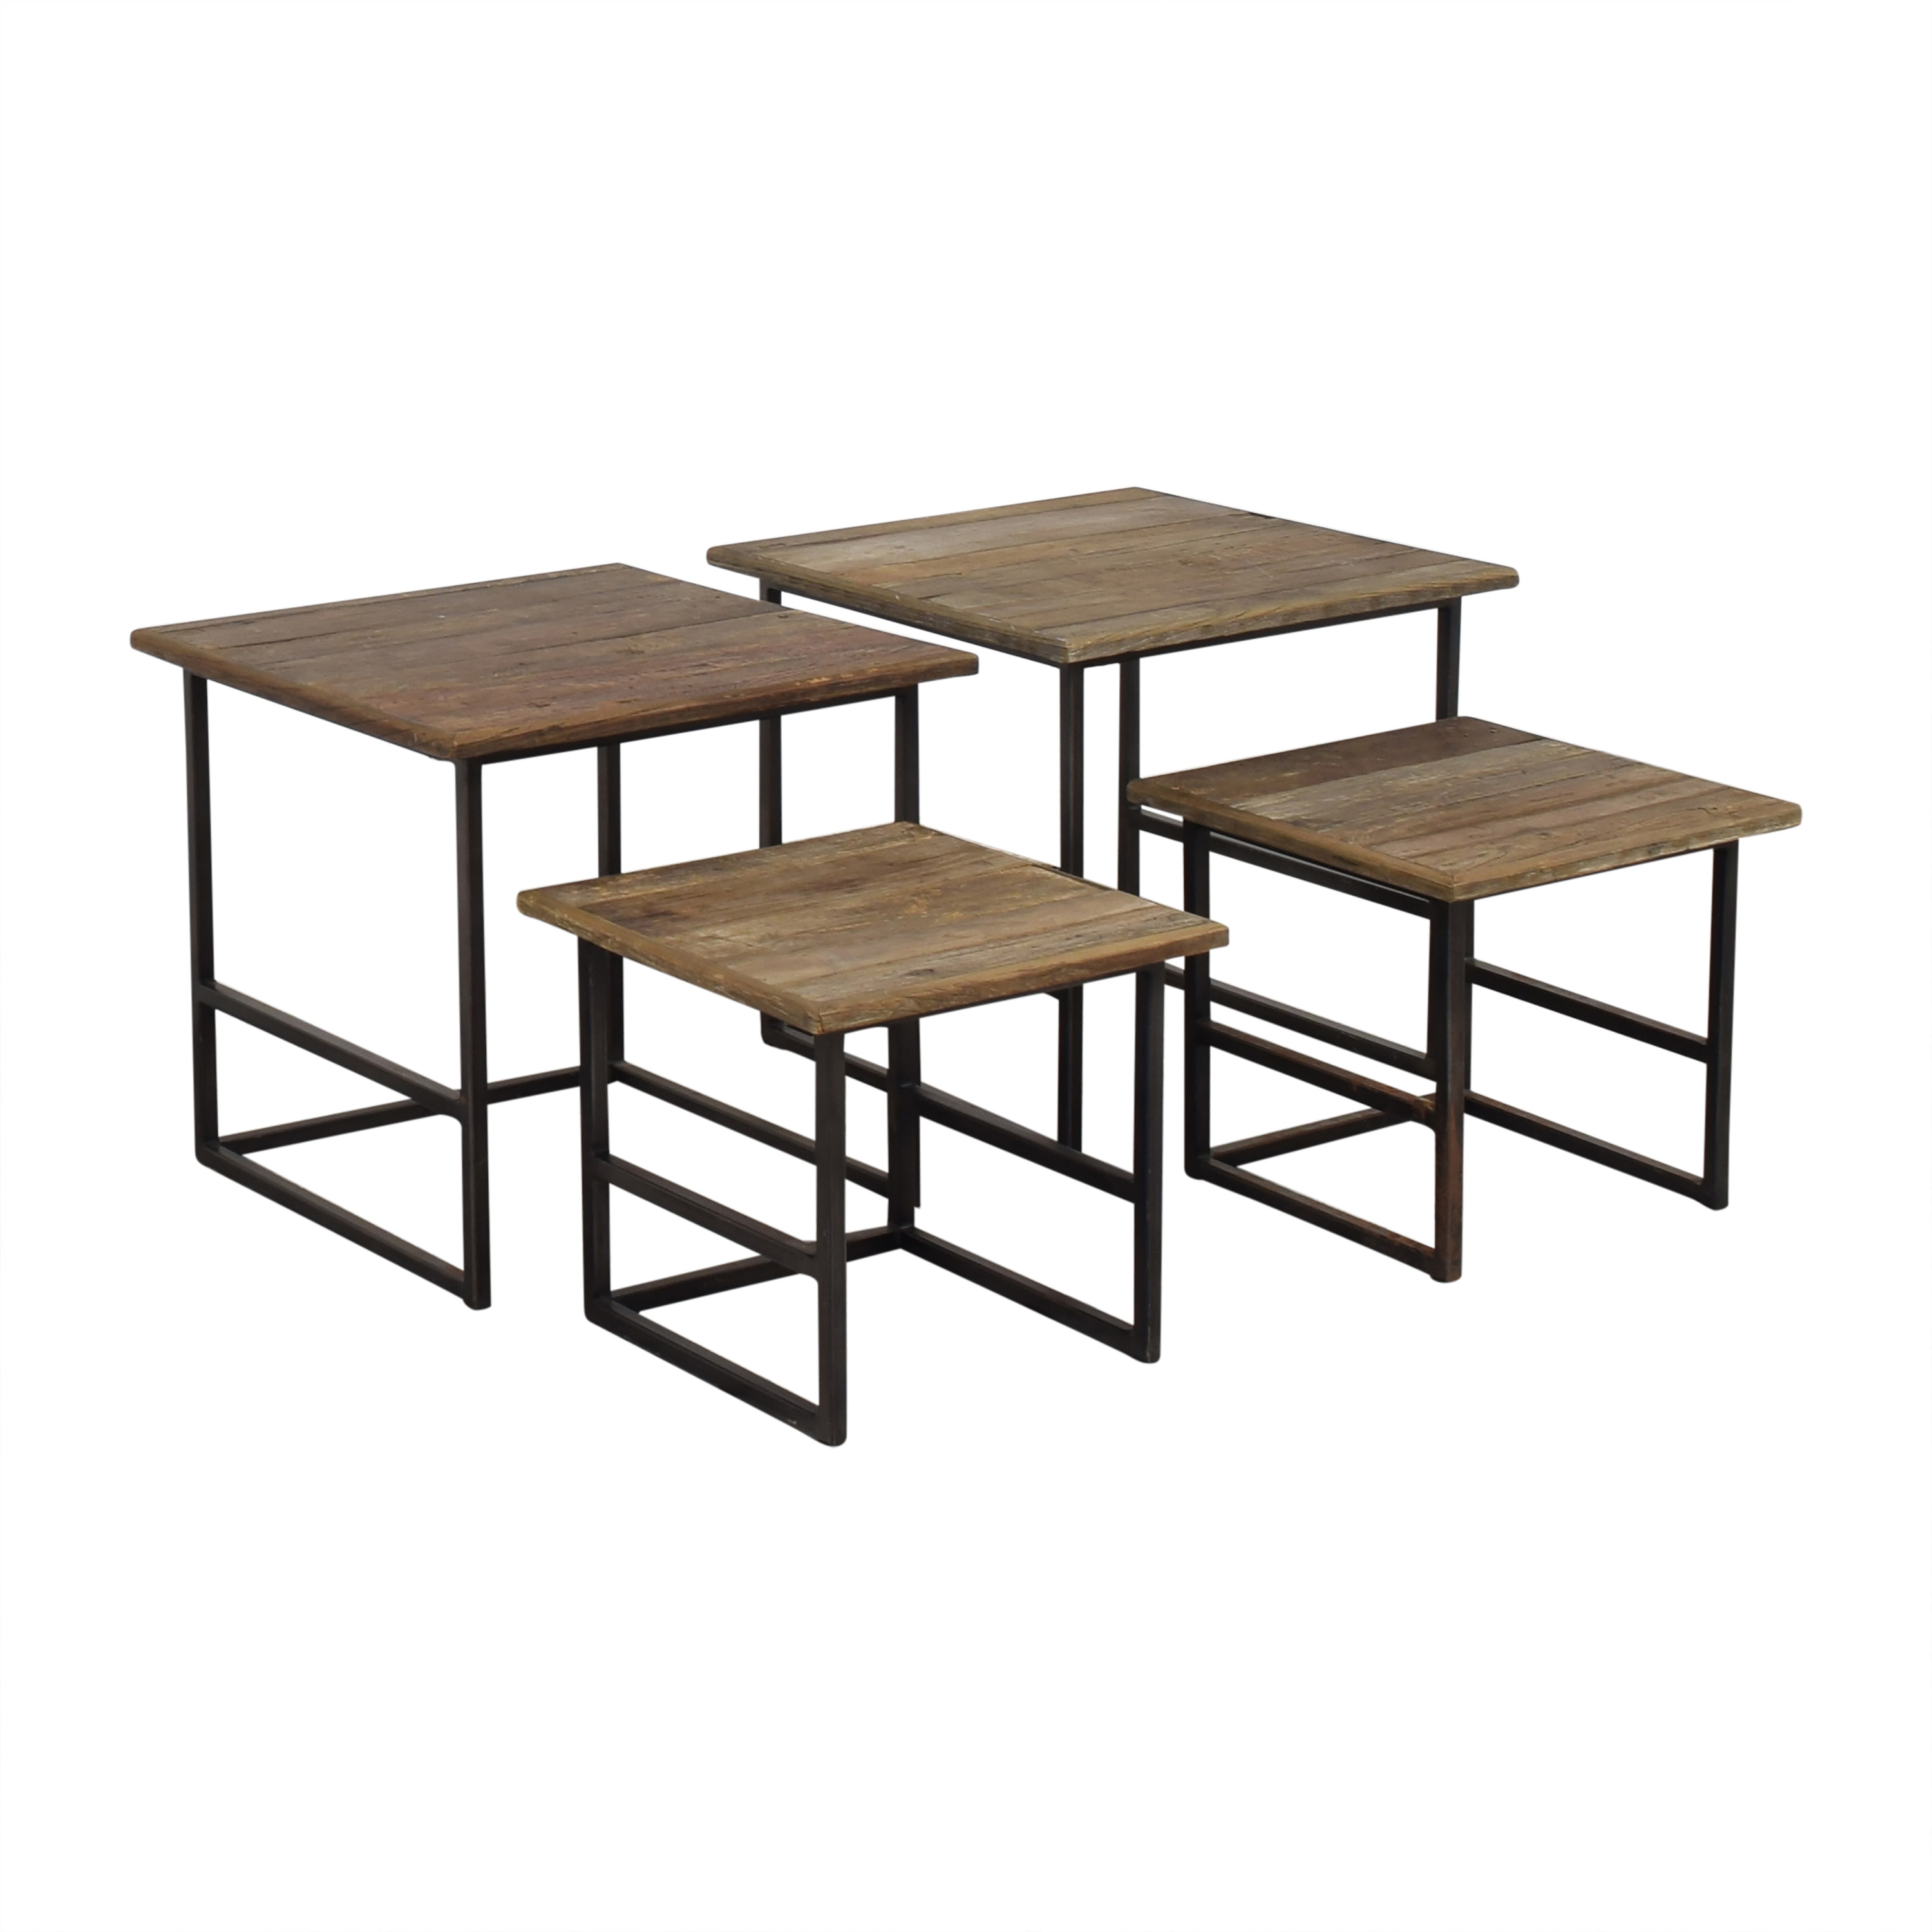 Restoration Hardware Restoration Hardware Rustic Nesting Side Tables nyc